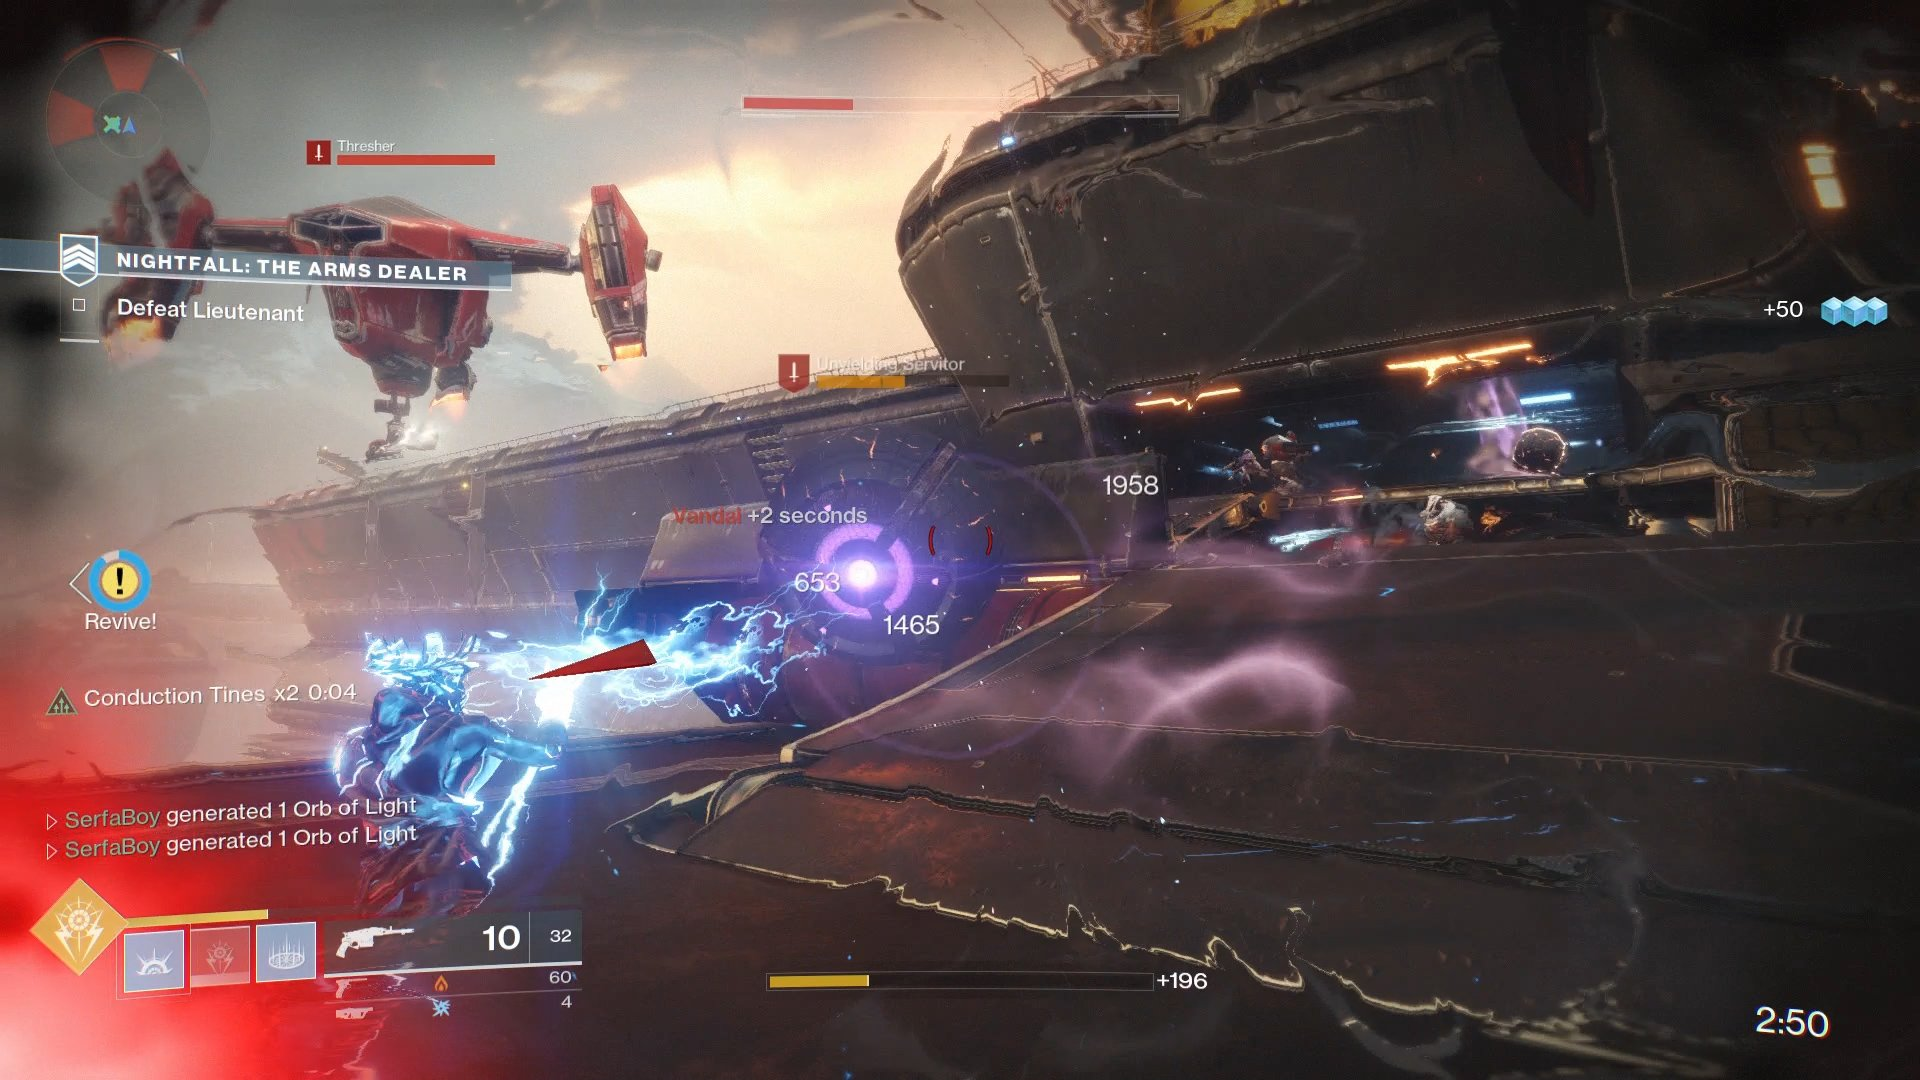 Each of the Strike is distinct, offering varied gameplay moments, but no Strike-specific loot.